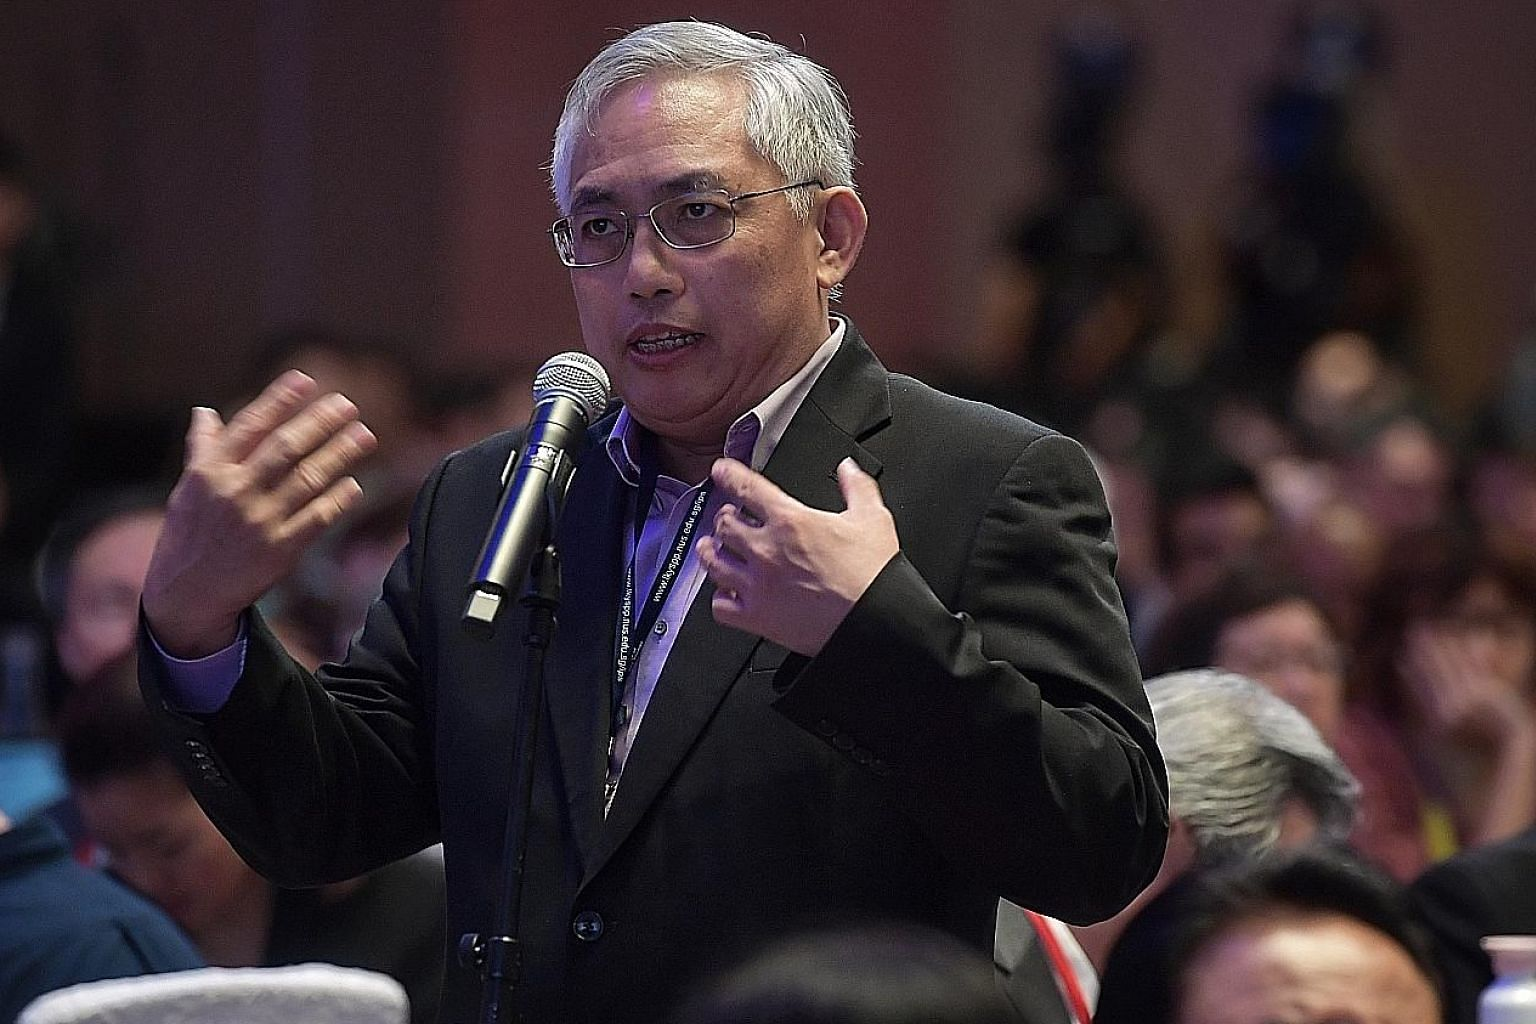 Opposition People's Power Party chief Goh Meng Seng called for the Government to provide more data for fruitful policy debates.